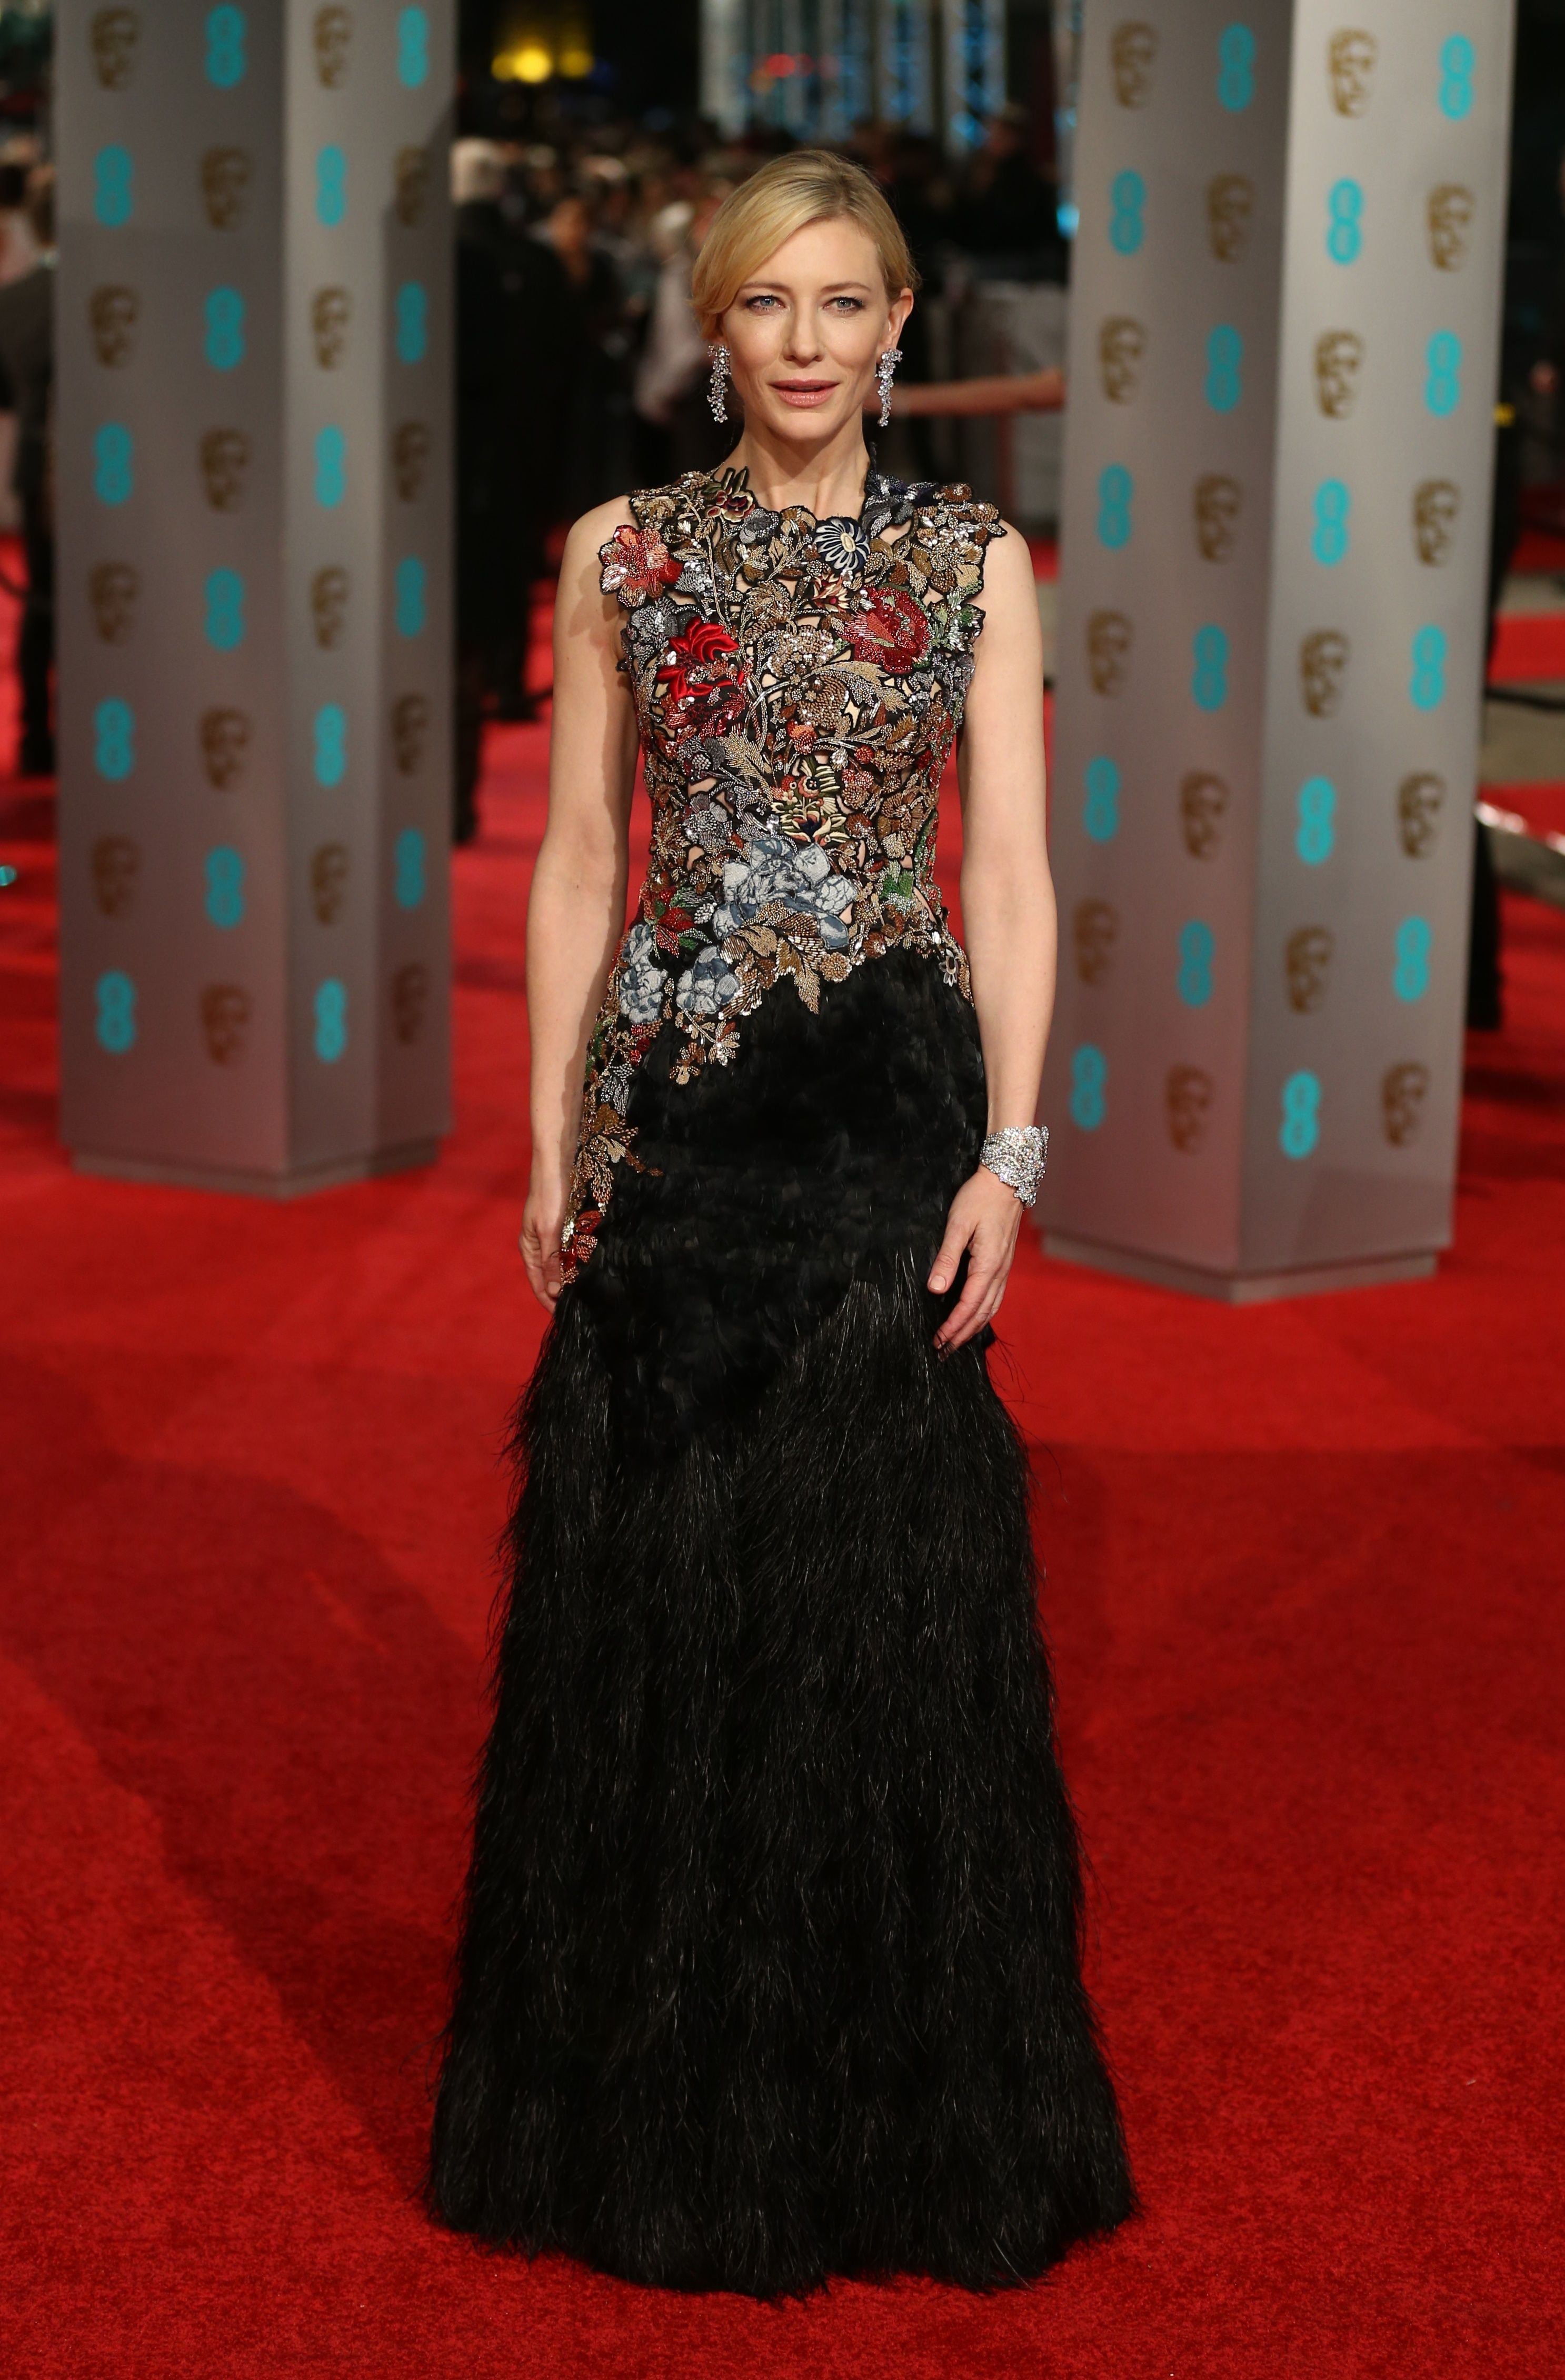 36_alexander_mcqueen_gown_to_the_2016_bafta_awards_at_the_royal_opera_house_in_london.jpg